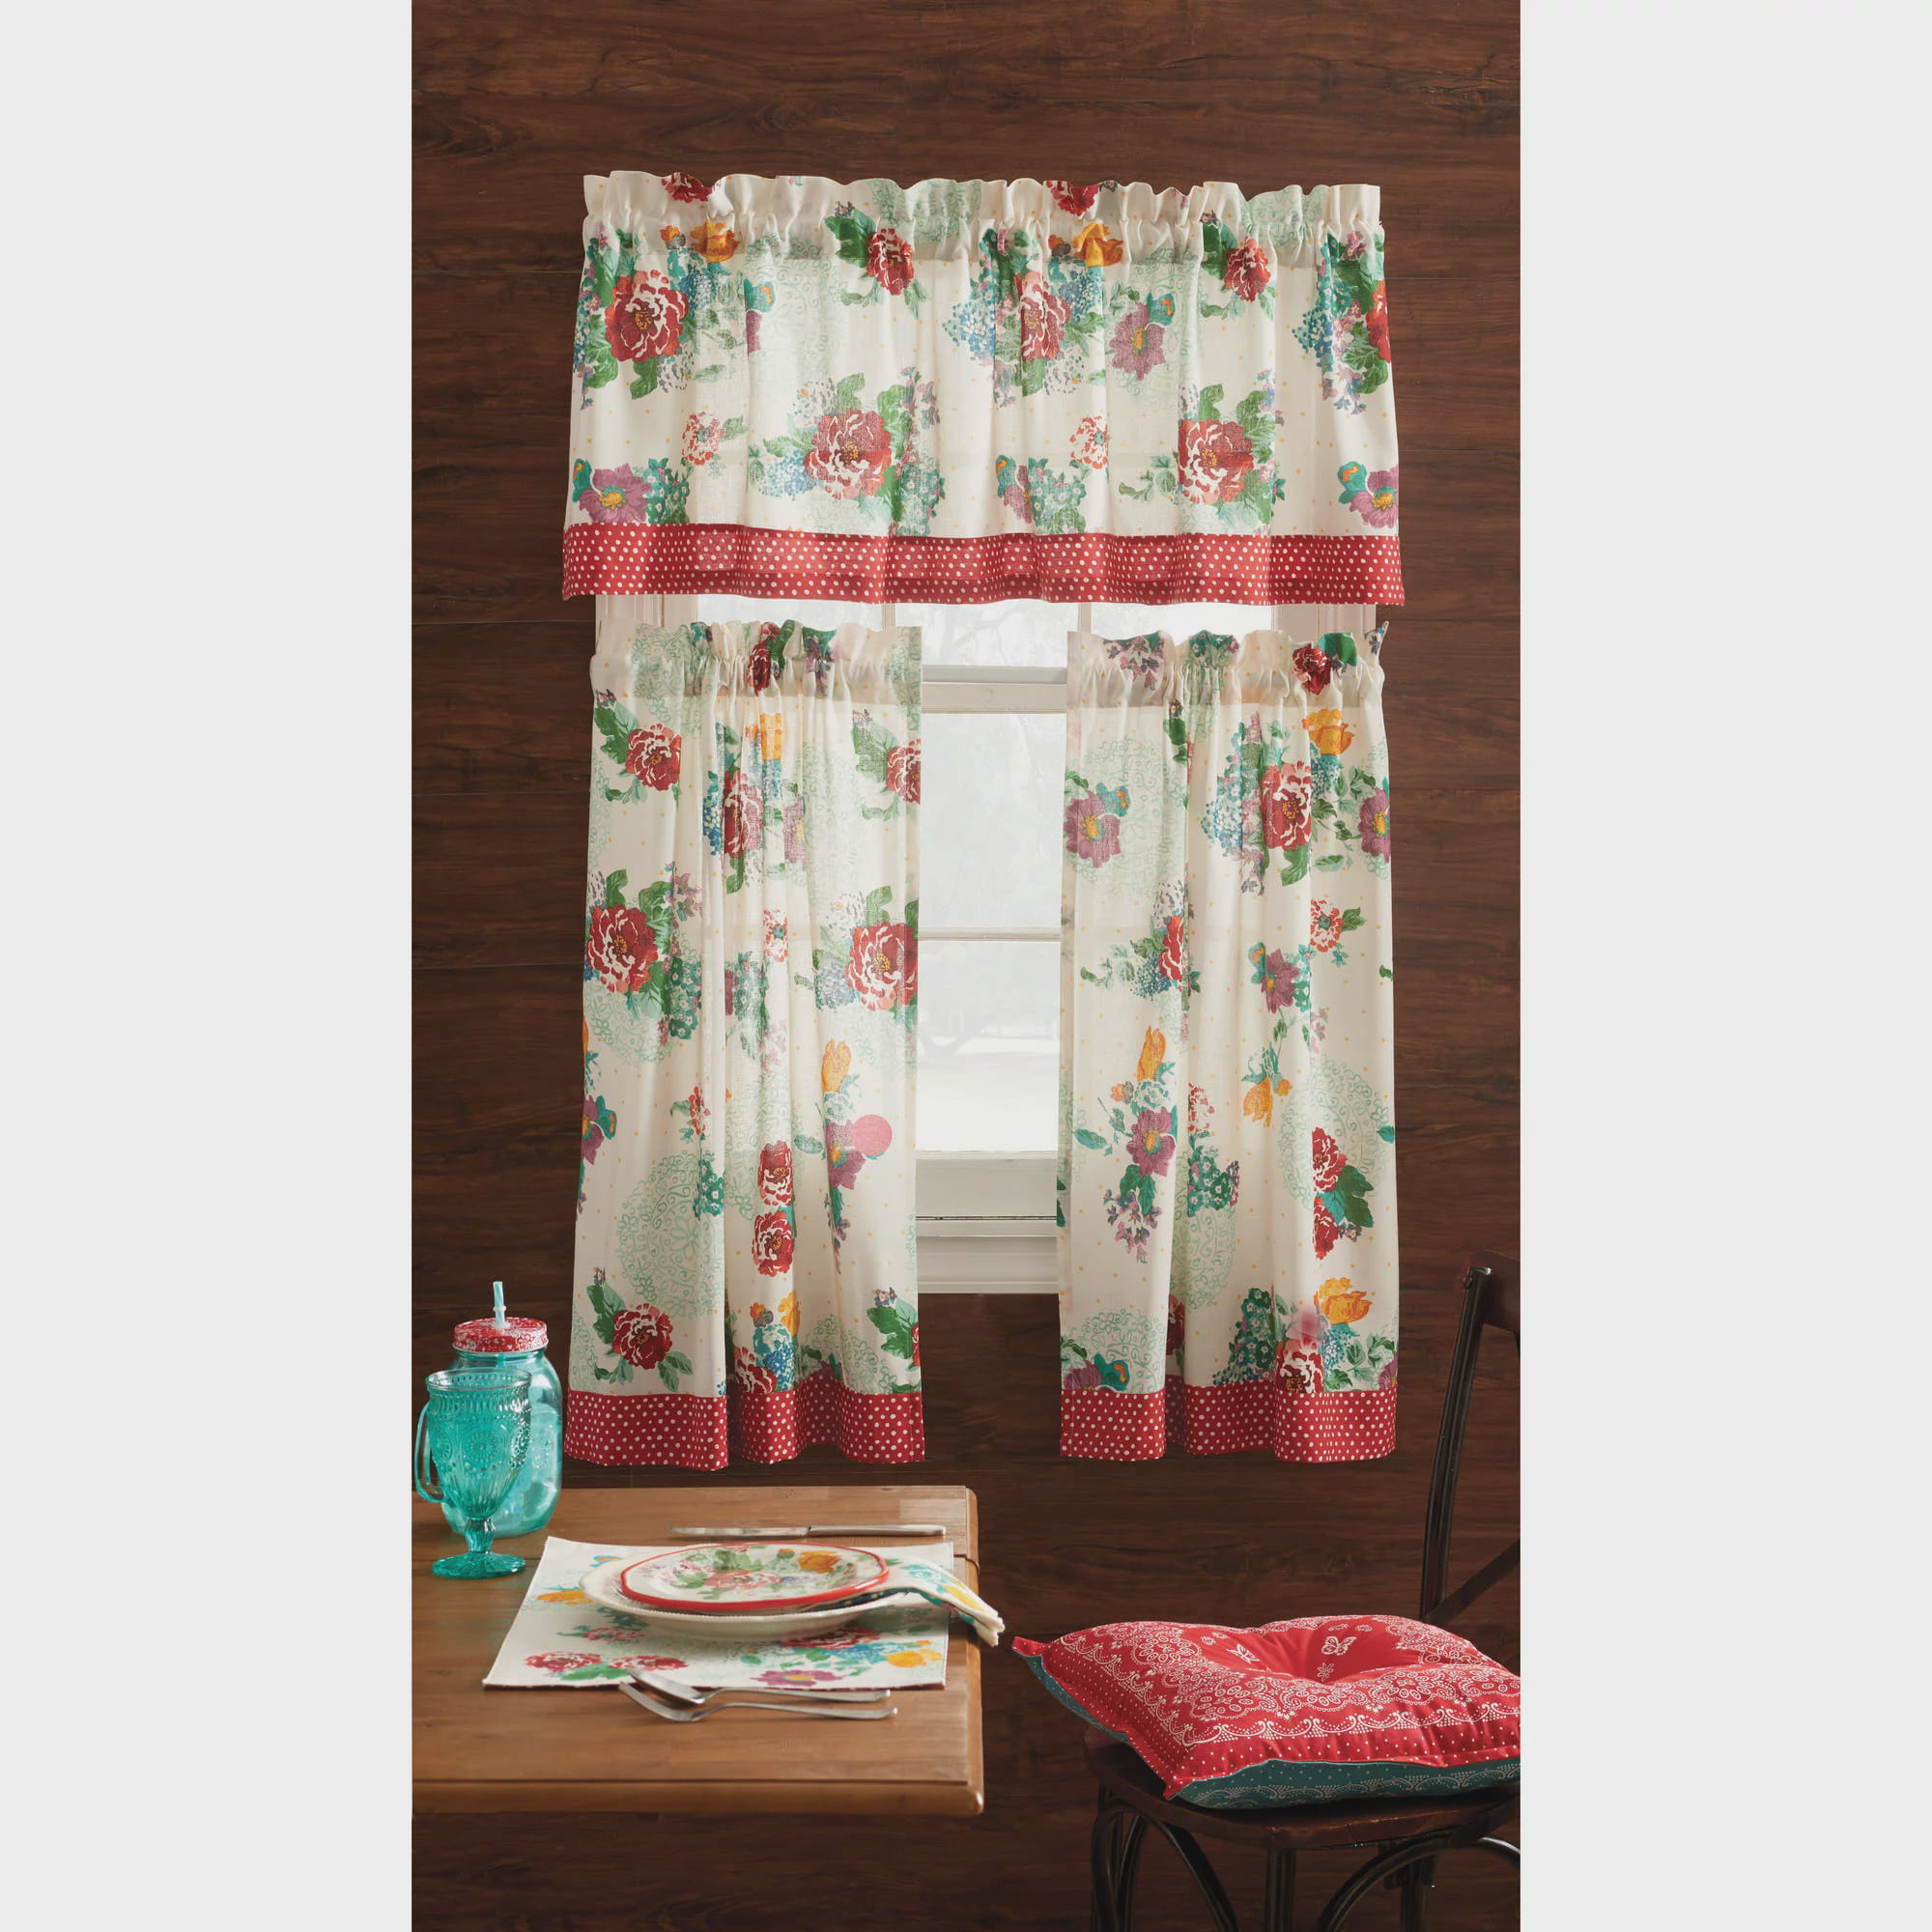 pioneer woman kitchen curtain and valance 3pc set country garden walmartcom - Kitchen Curtain